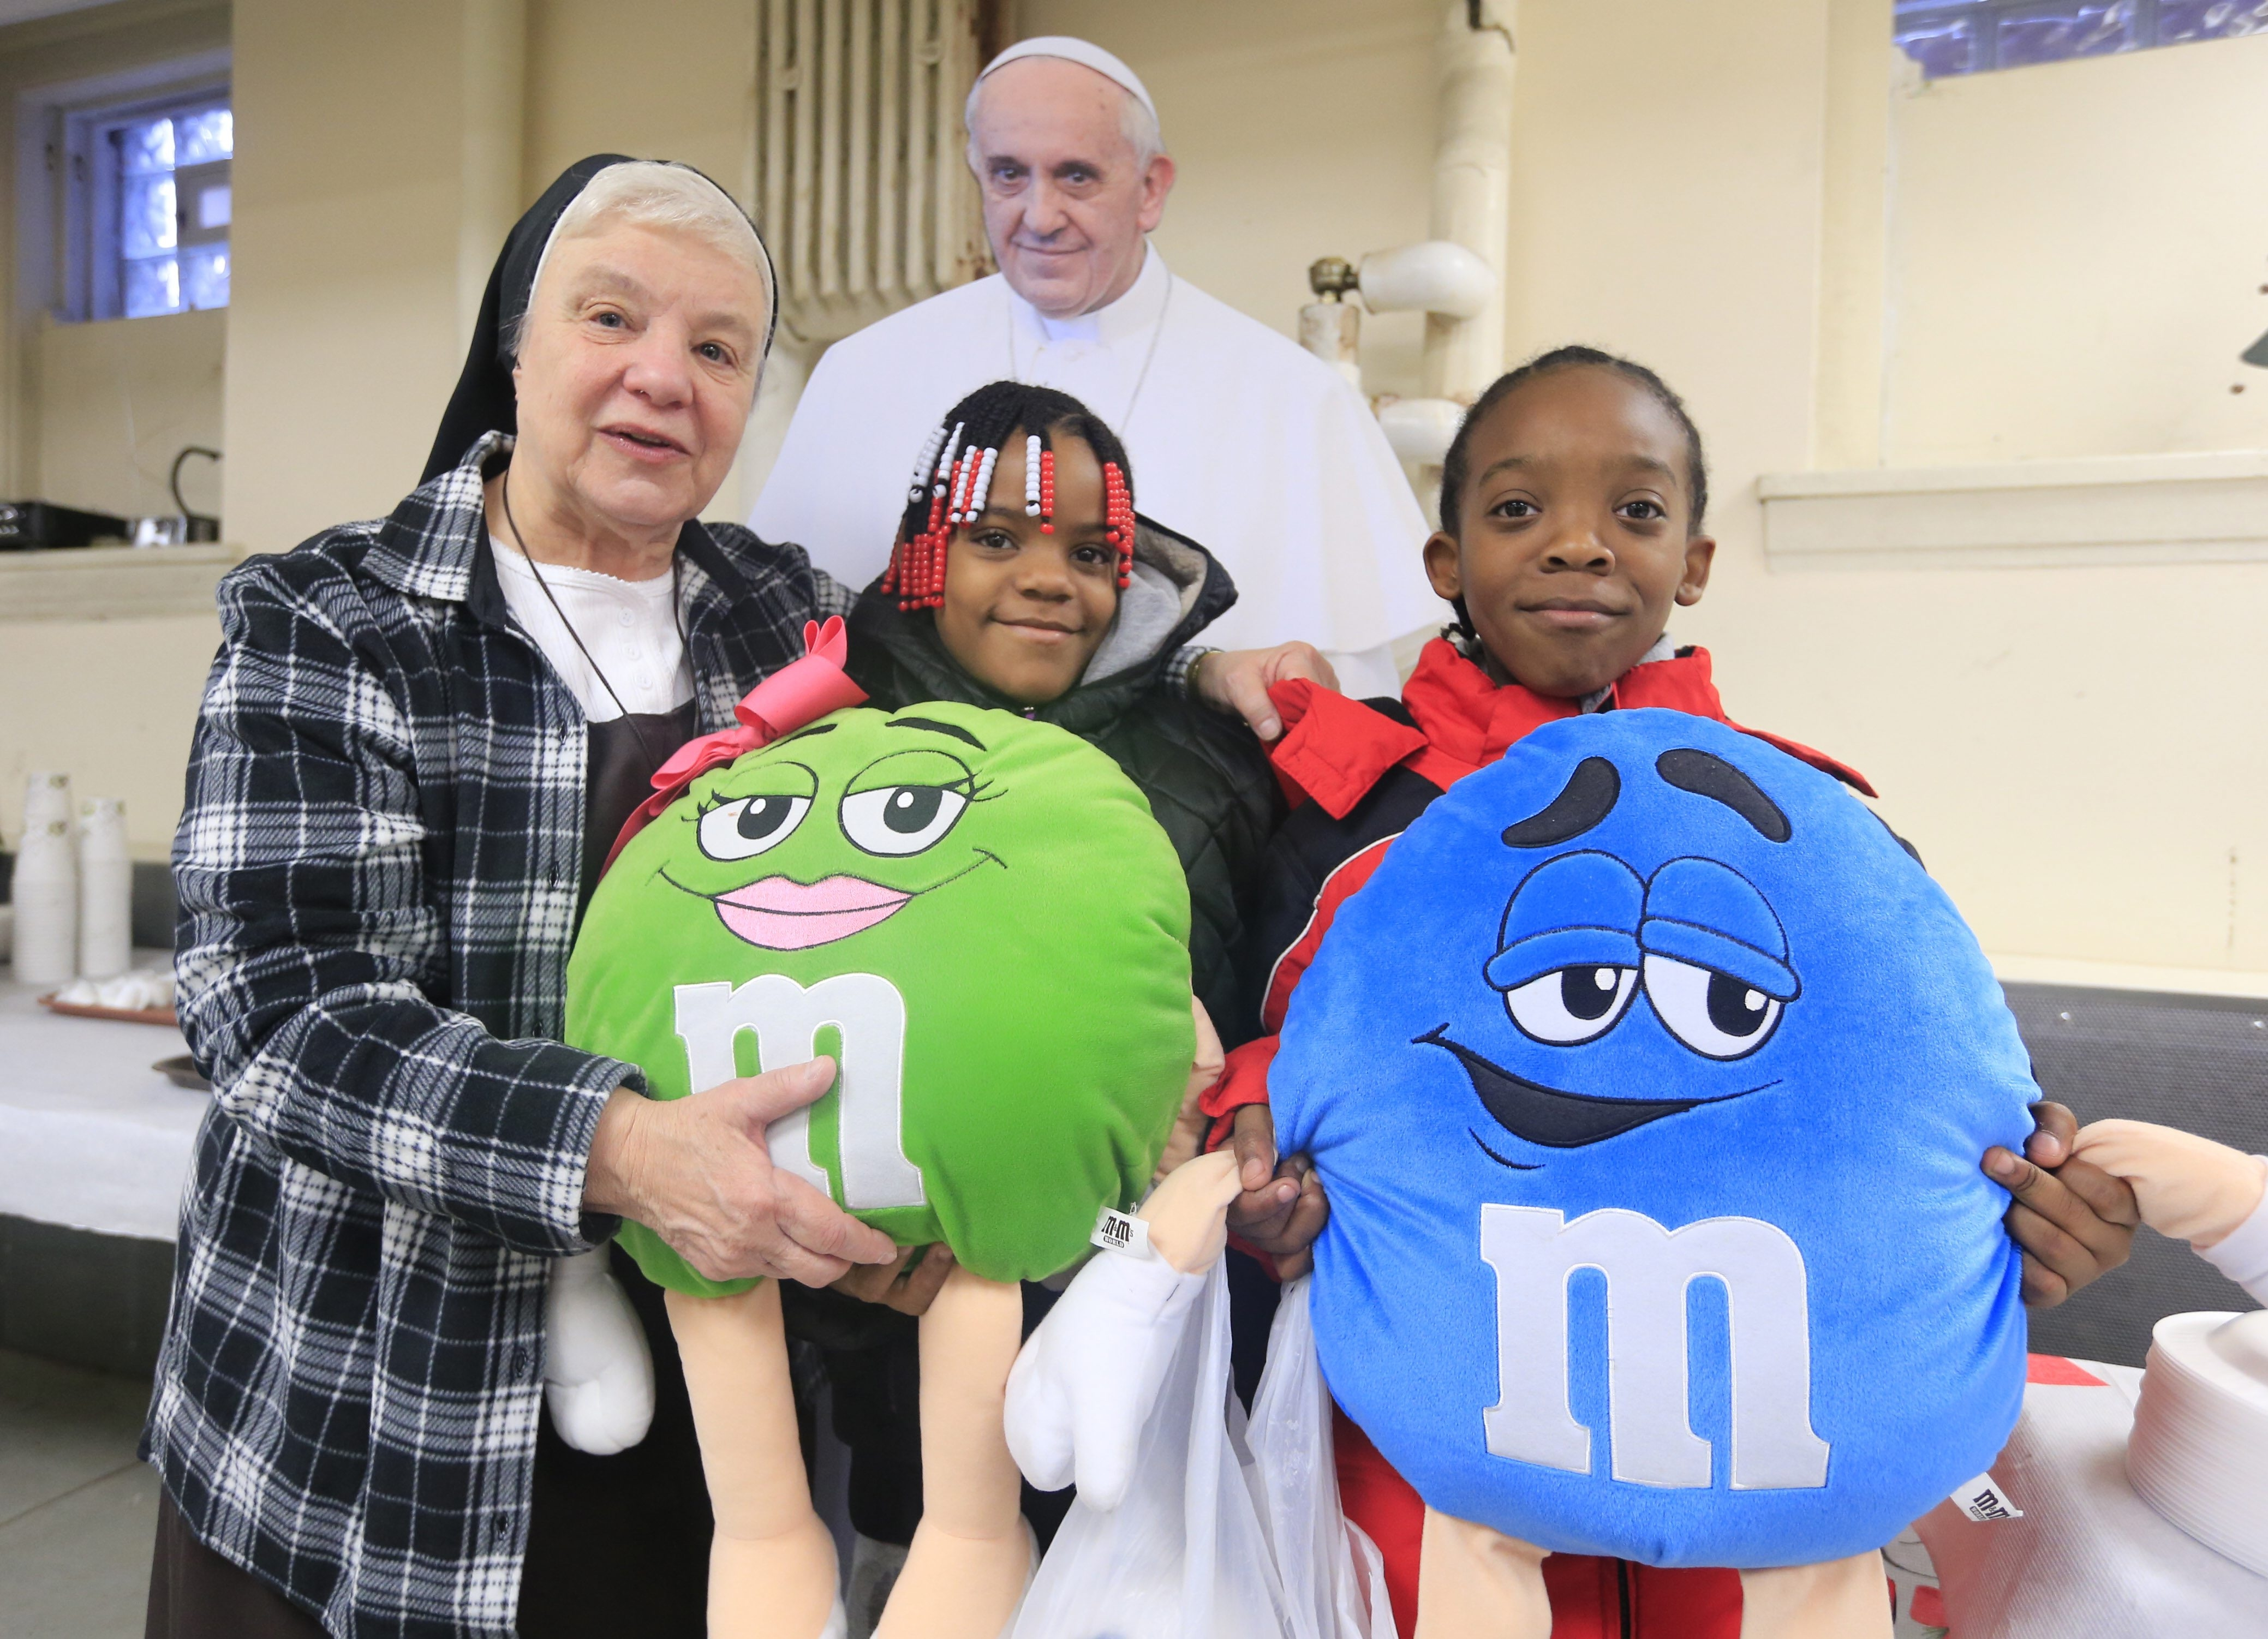 Sister Mary Johnice Rzadkiewicz poses with Speshalle and Antoine Chaney in front of a life-size cutout of Pope Francis, after the children received gifts during the annual Christmas dinner at the Response to Love Center on Friday.